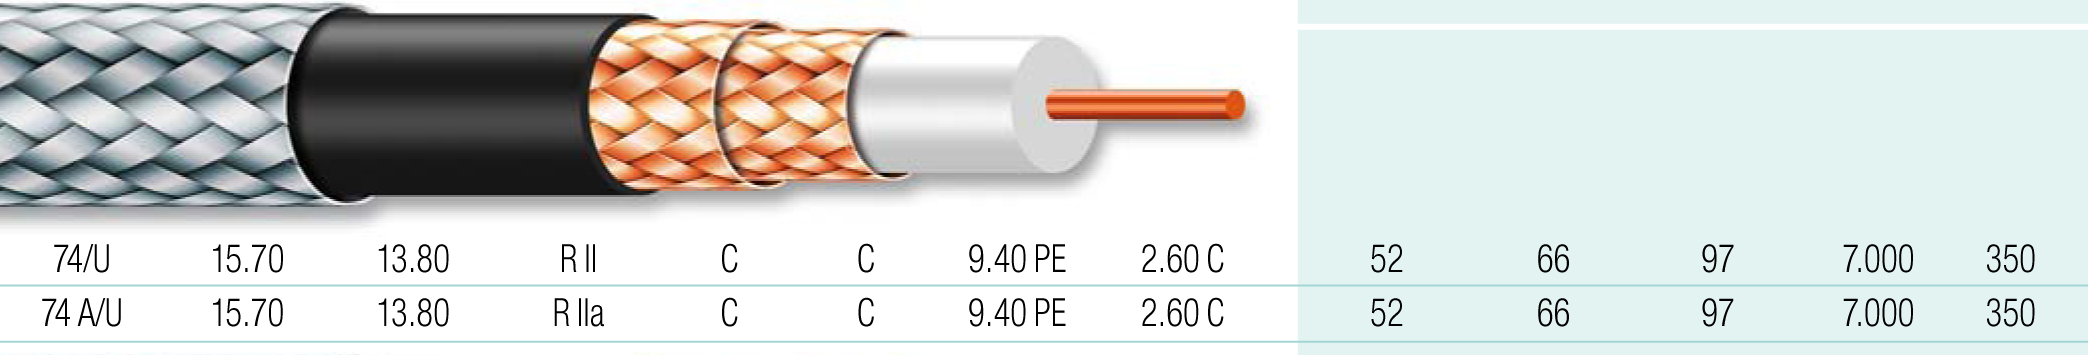 Cable coaxial 26